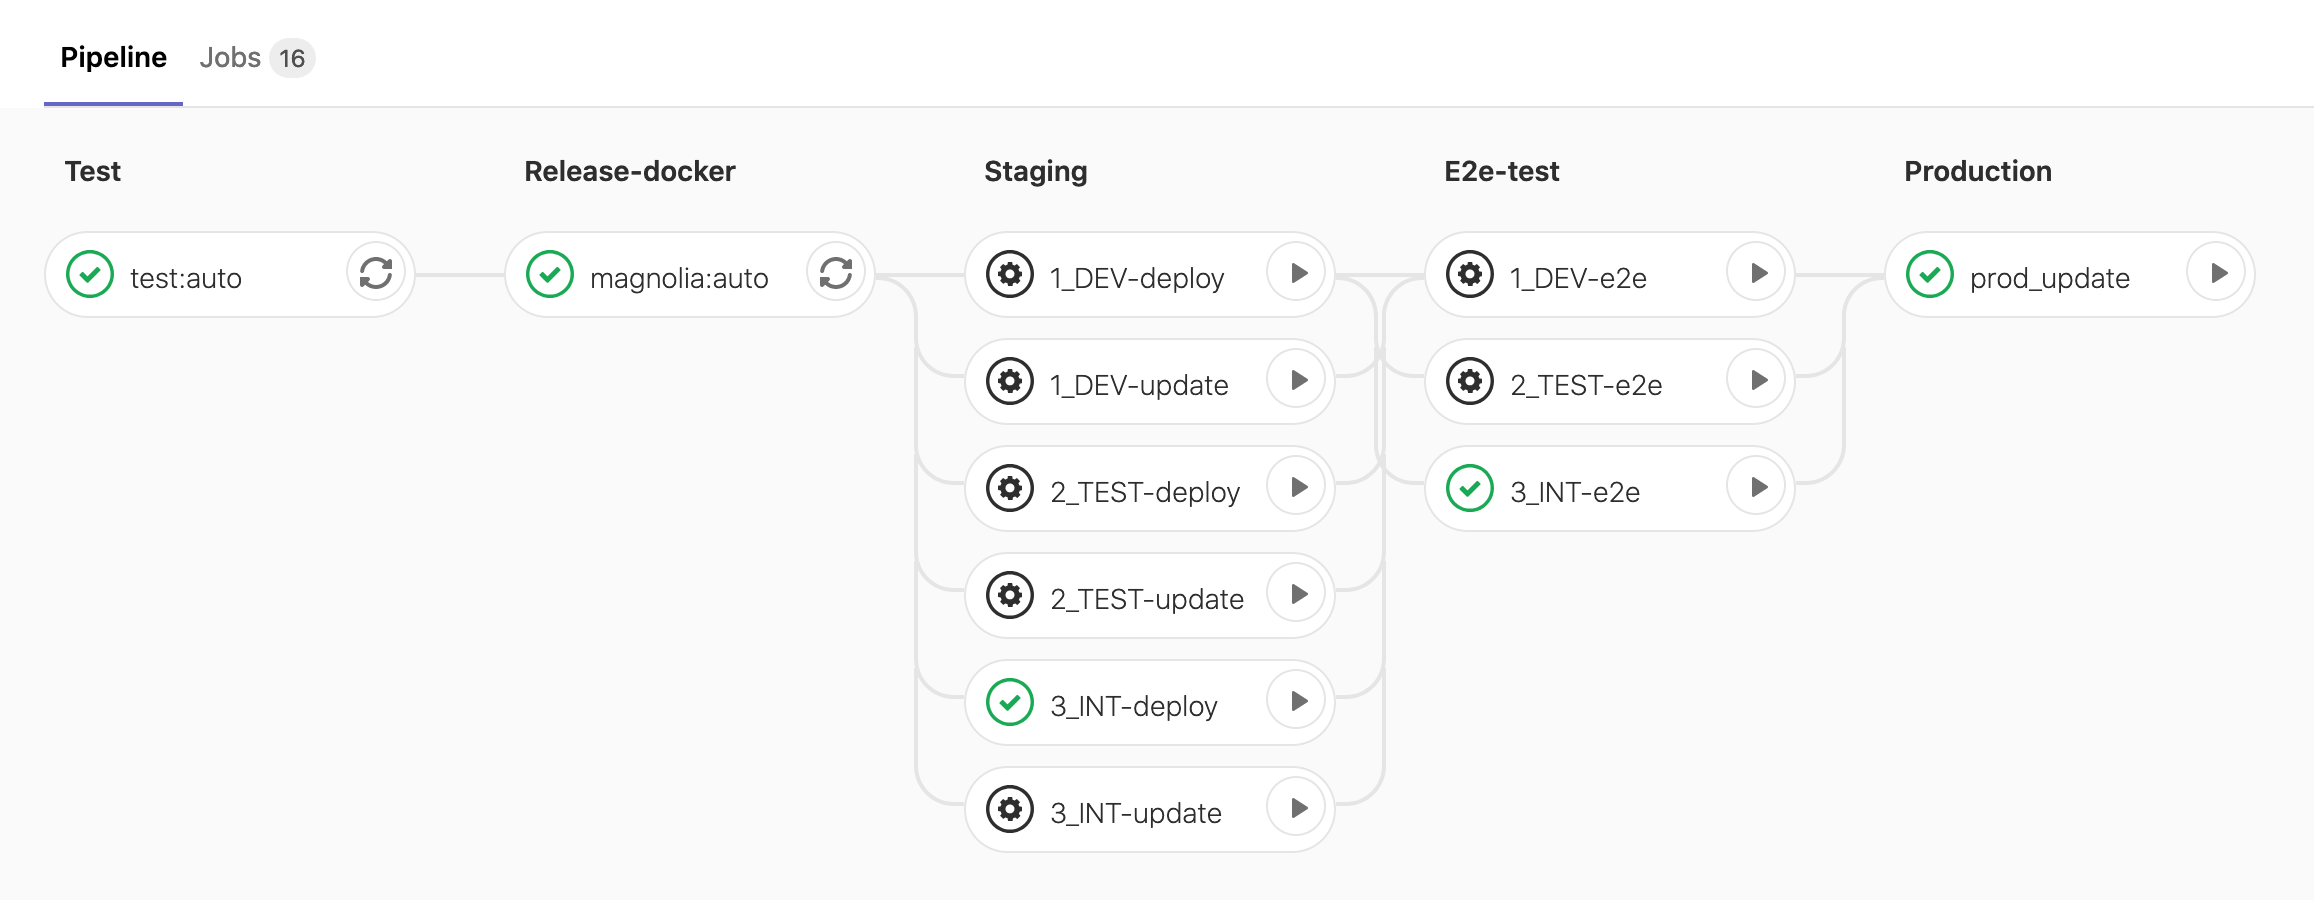 Screenshot of the build, test, staging, e2e-test, and deployment pipeline of one of our projects.